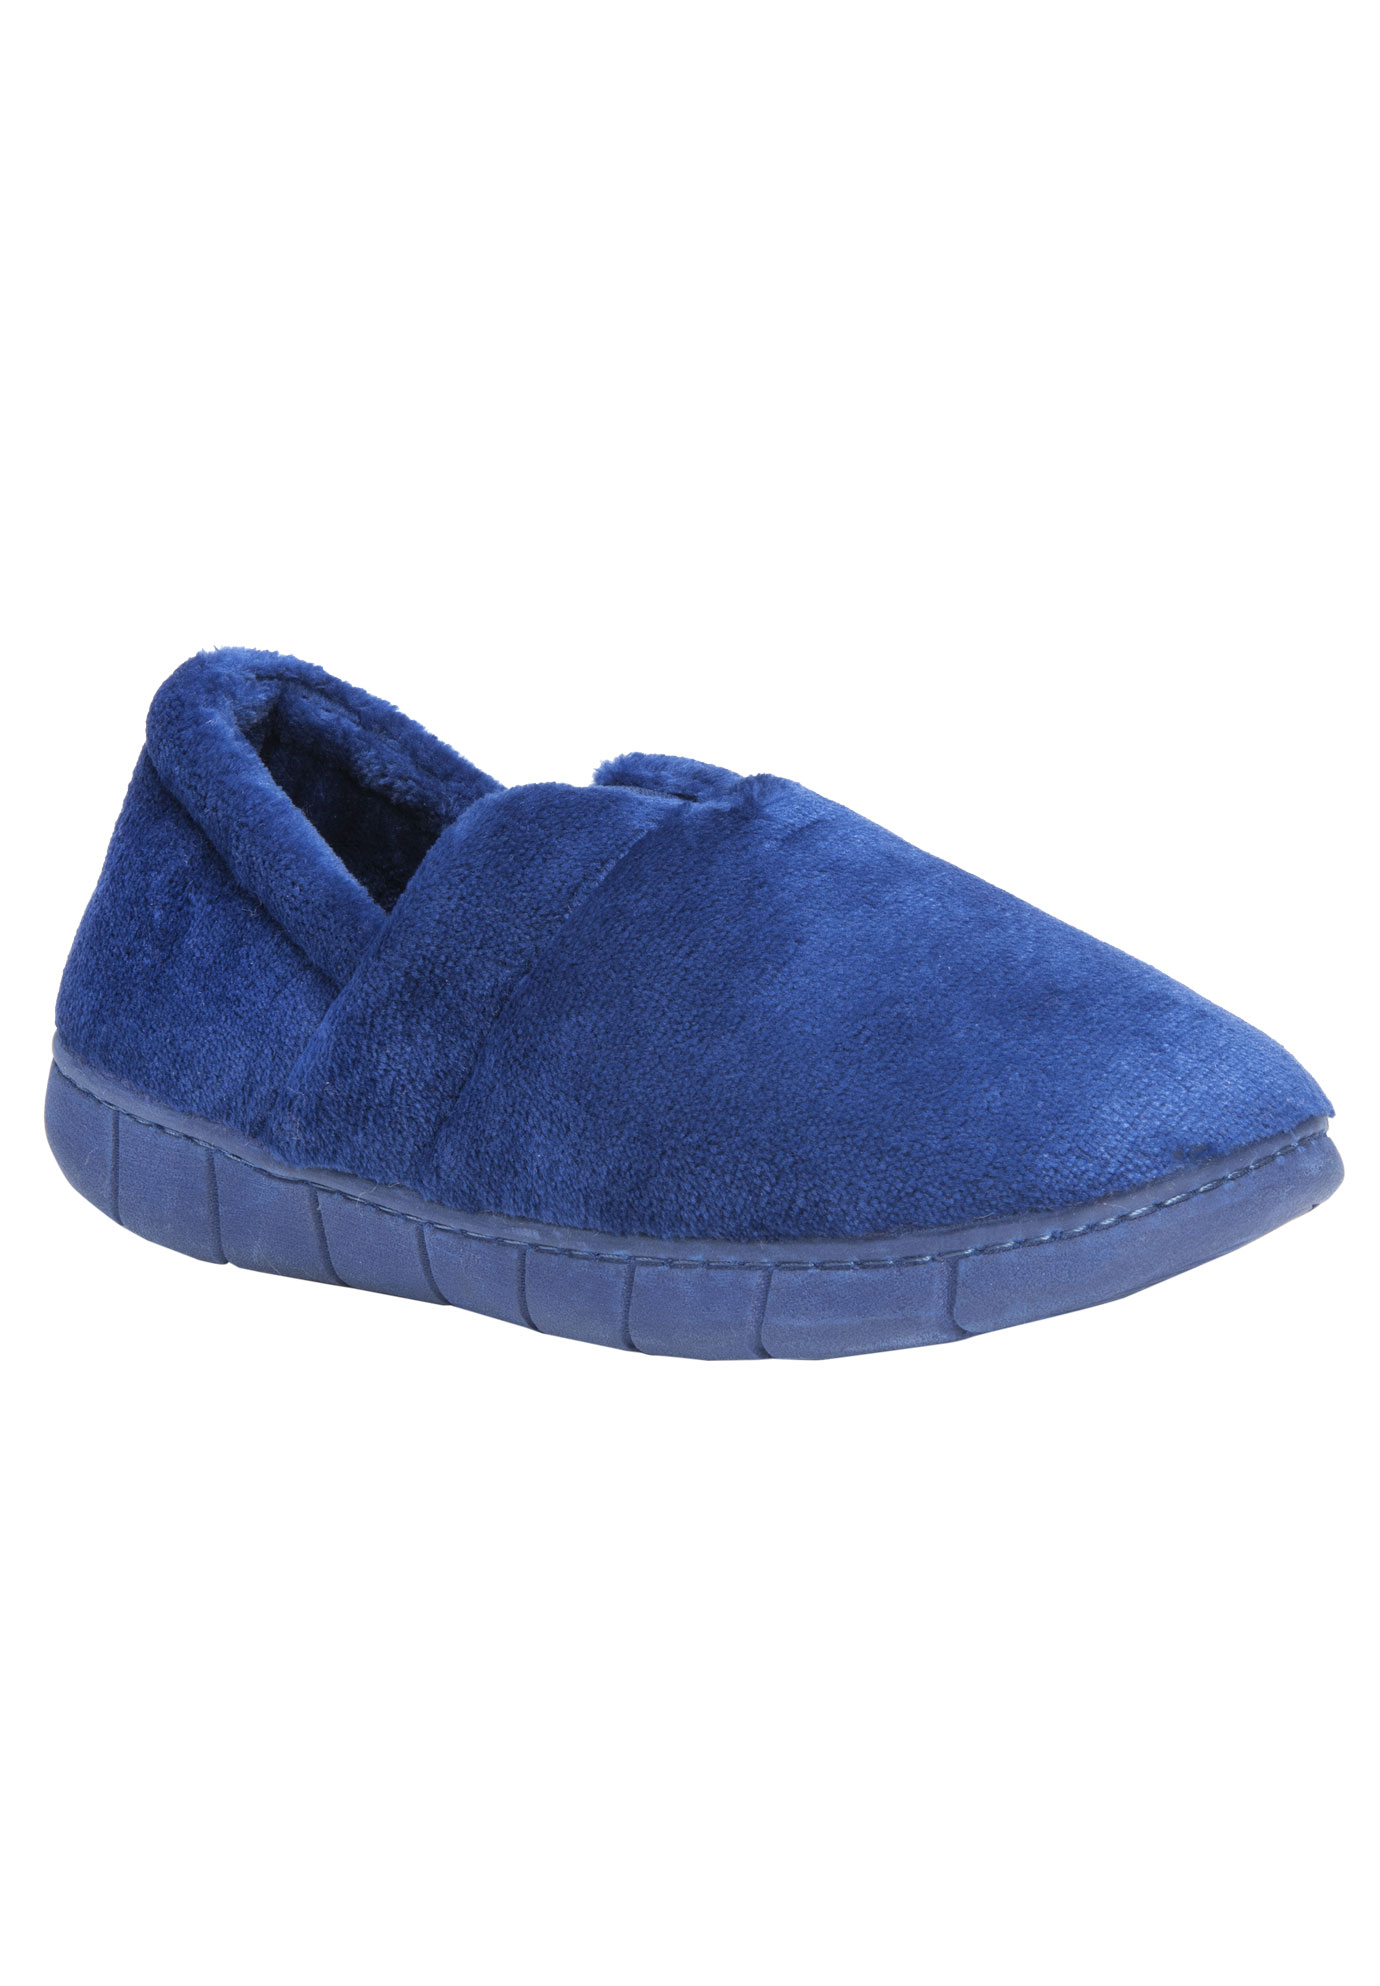 Maxine Slippers by Muk Luks®, LIBERTY BLUE, hi-res